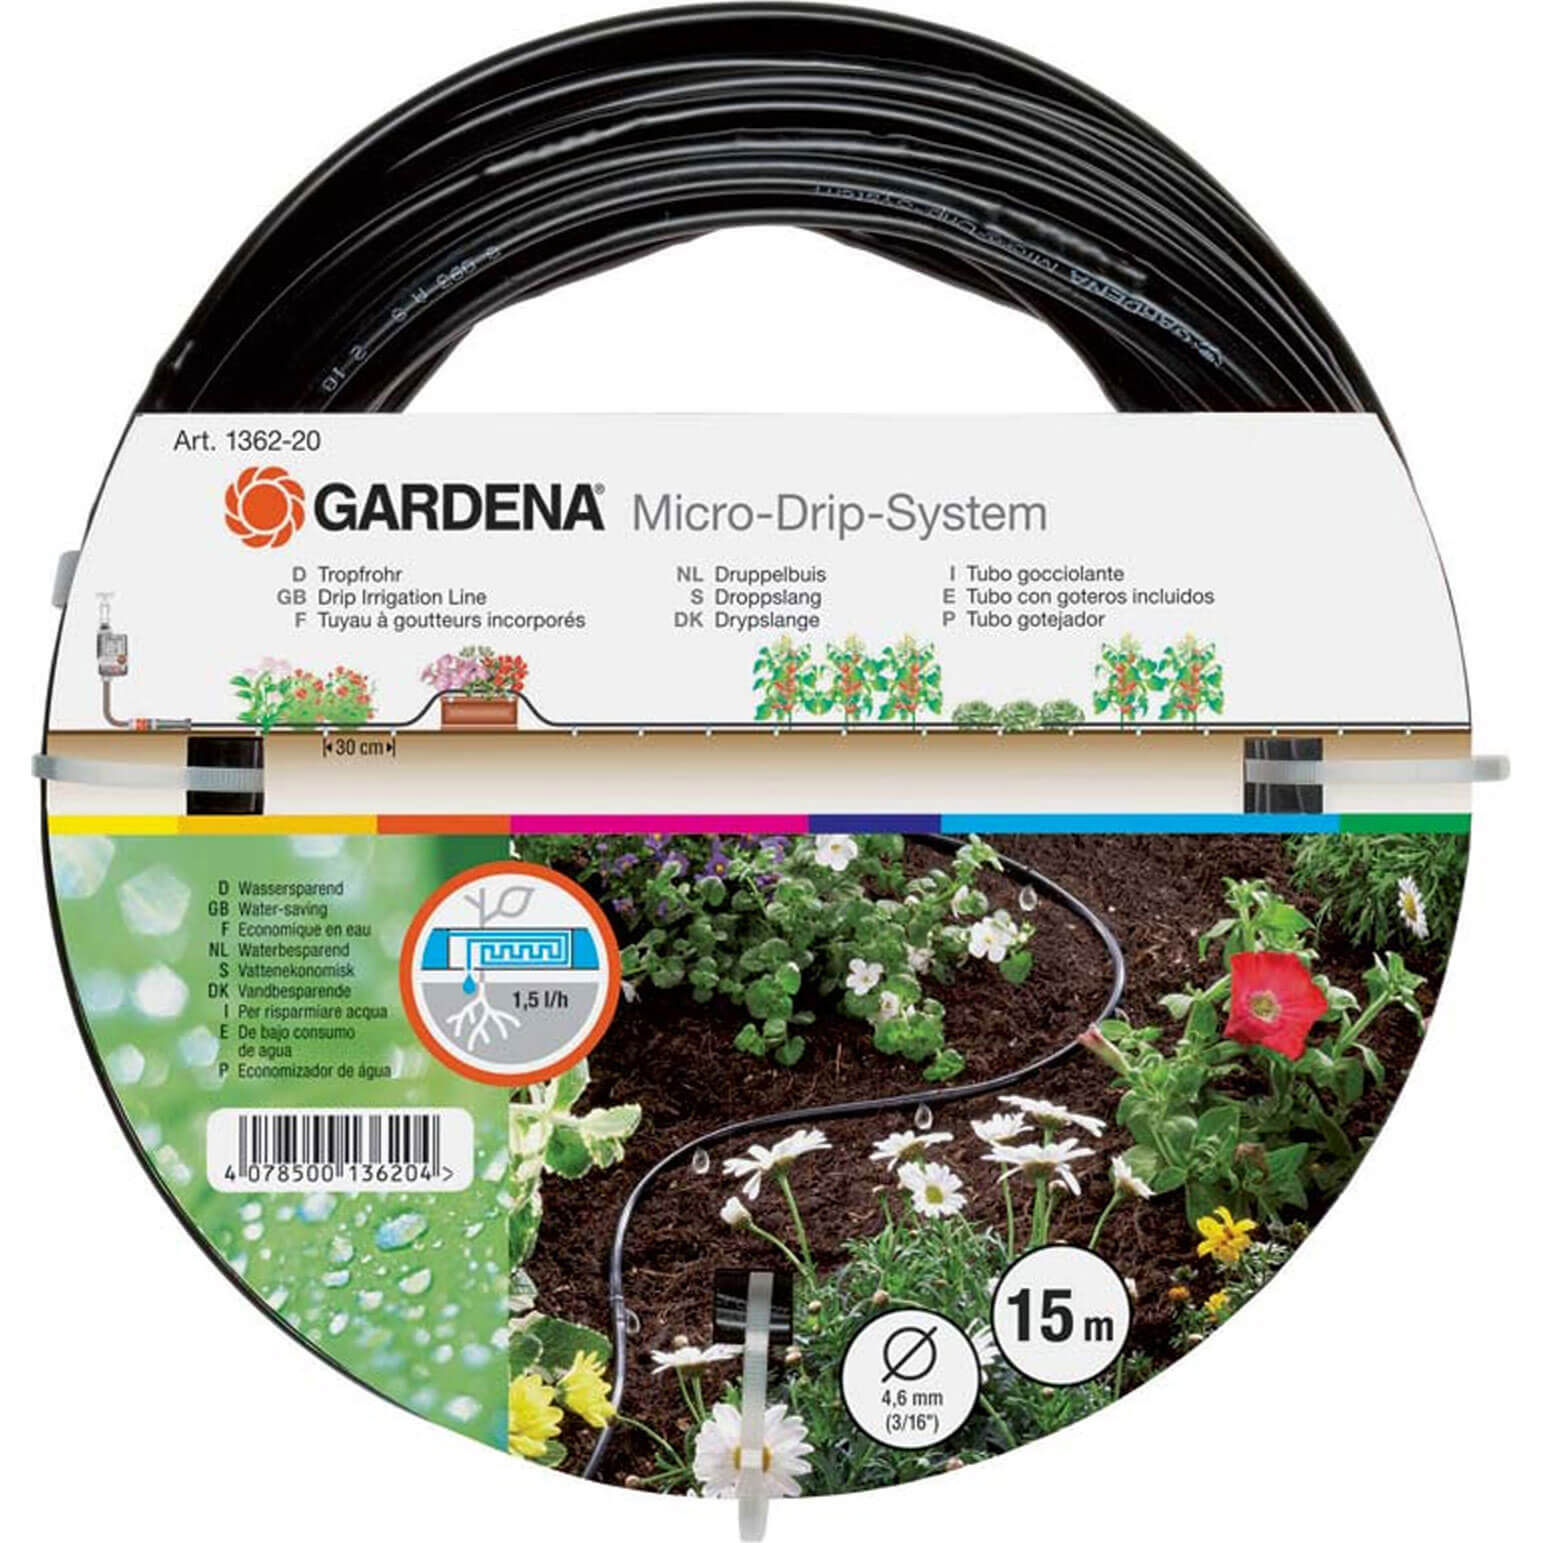 gardena micro drip above ground drip irrigation pipe. Black Bedroom Furniture Sets. Home Design Ideas